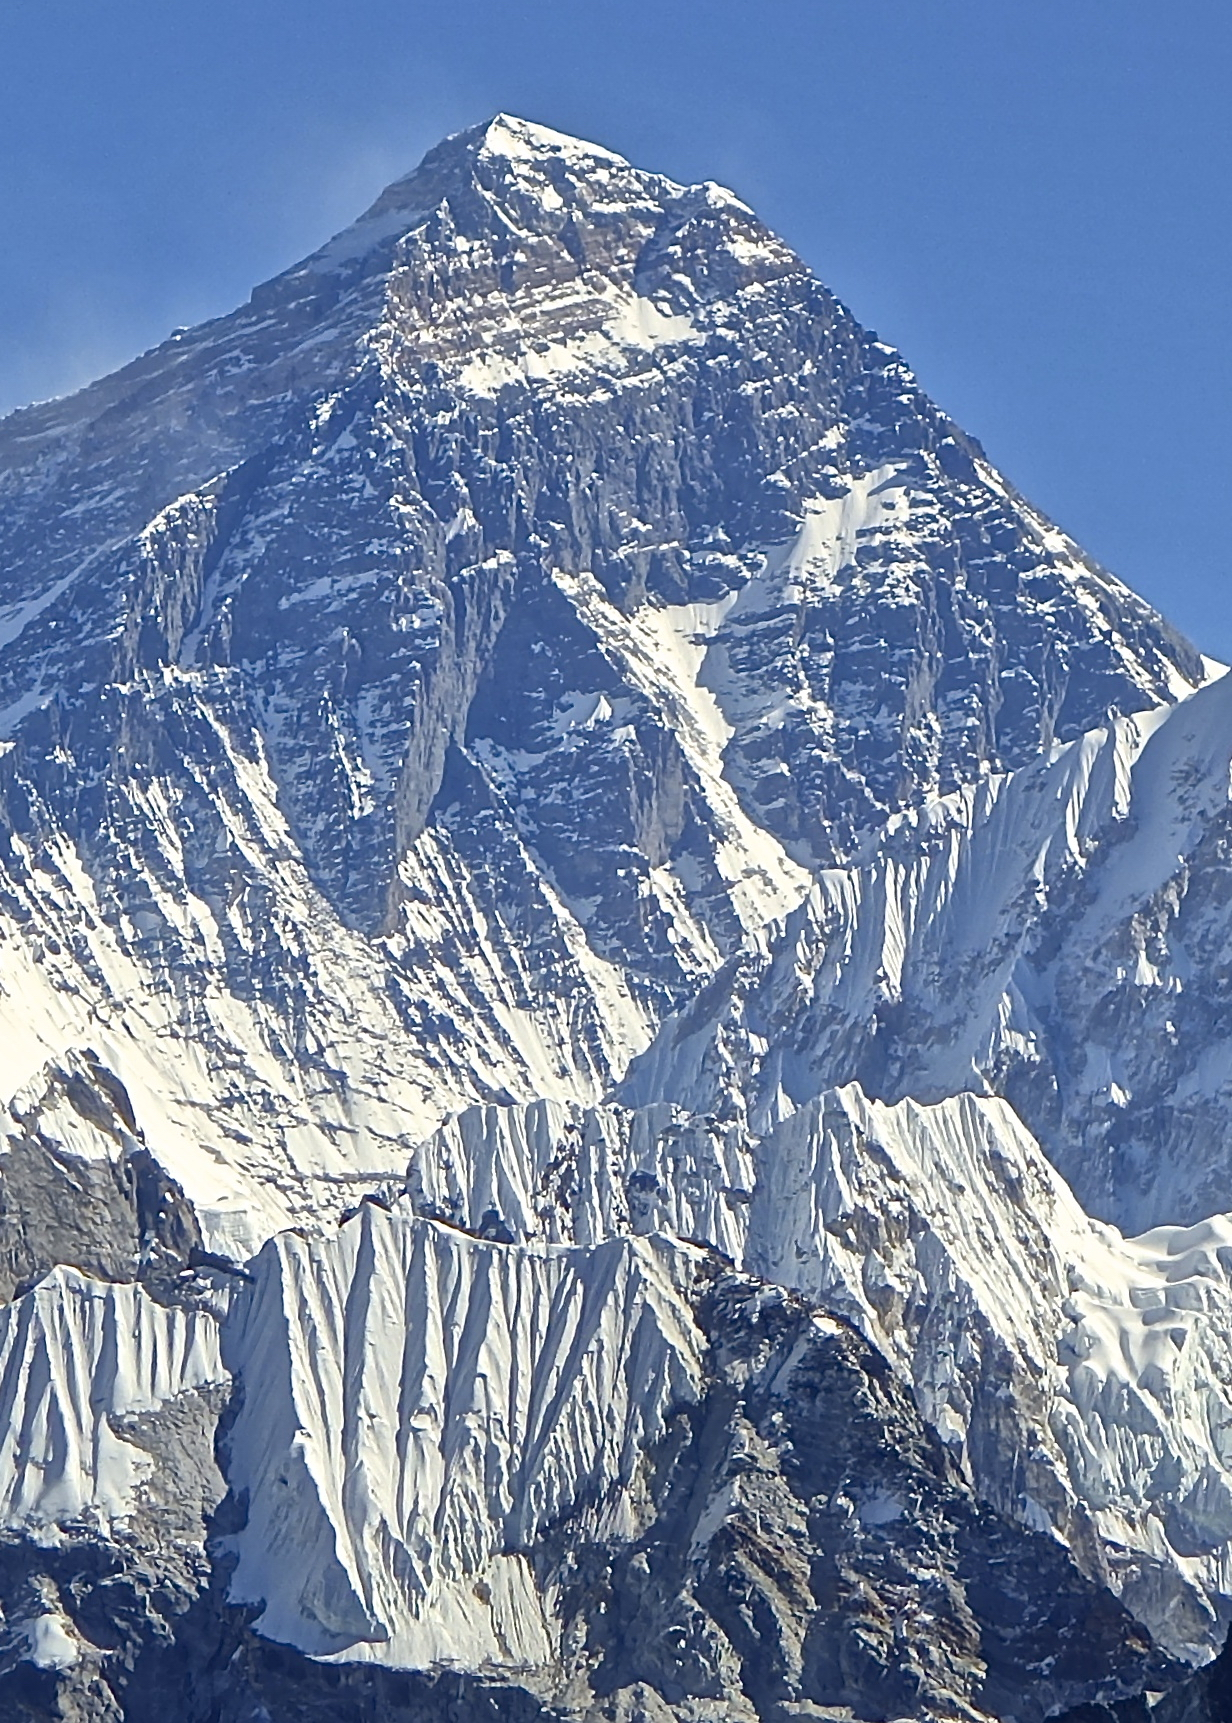 hight resolution of 1975 british mount everest southwest face expedition